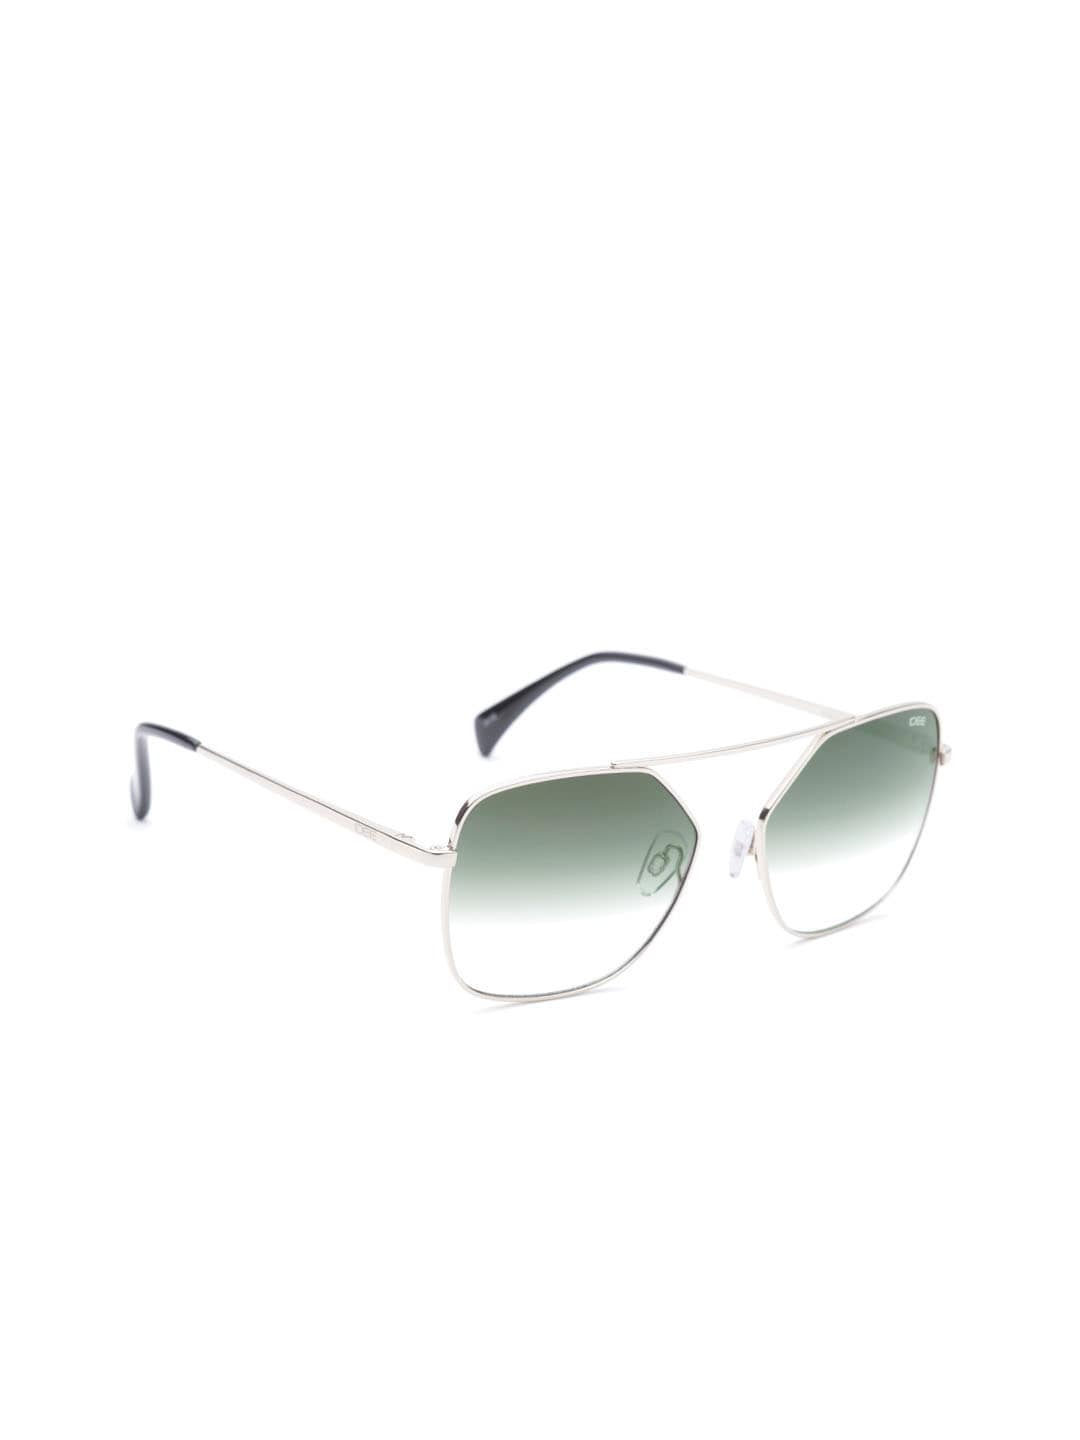 698d05e5452 Sunglasses - Buy Shades for Men and Women Online in India